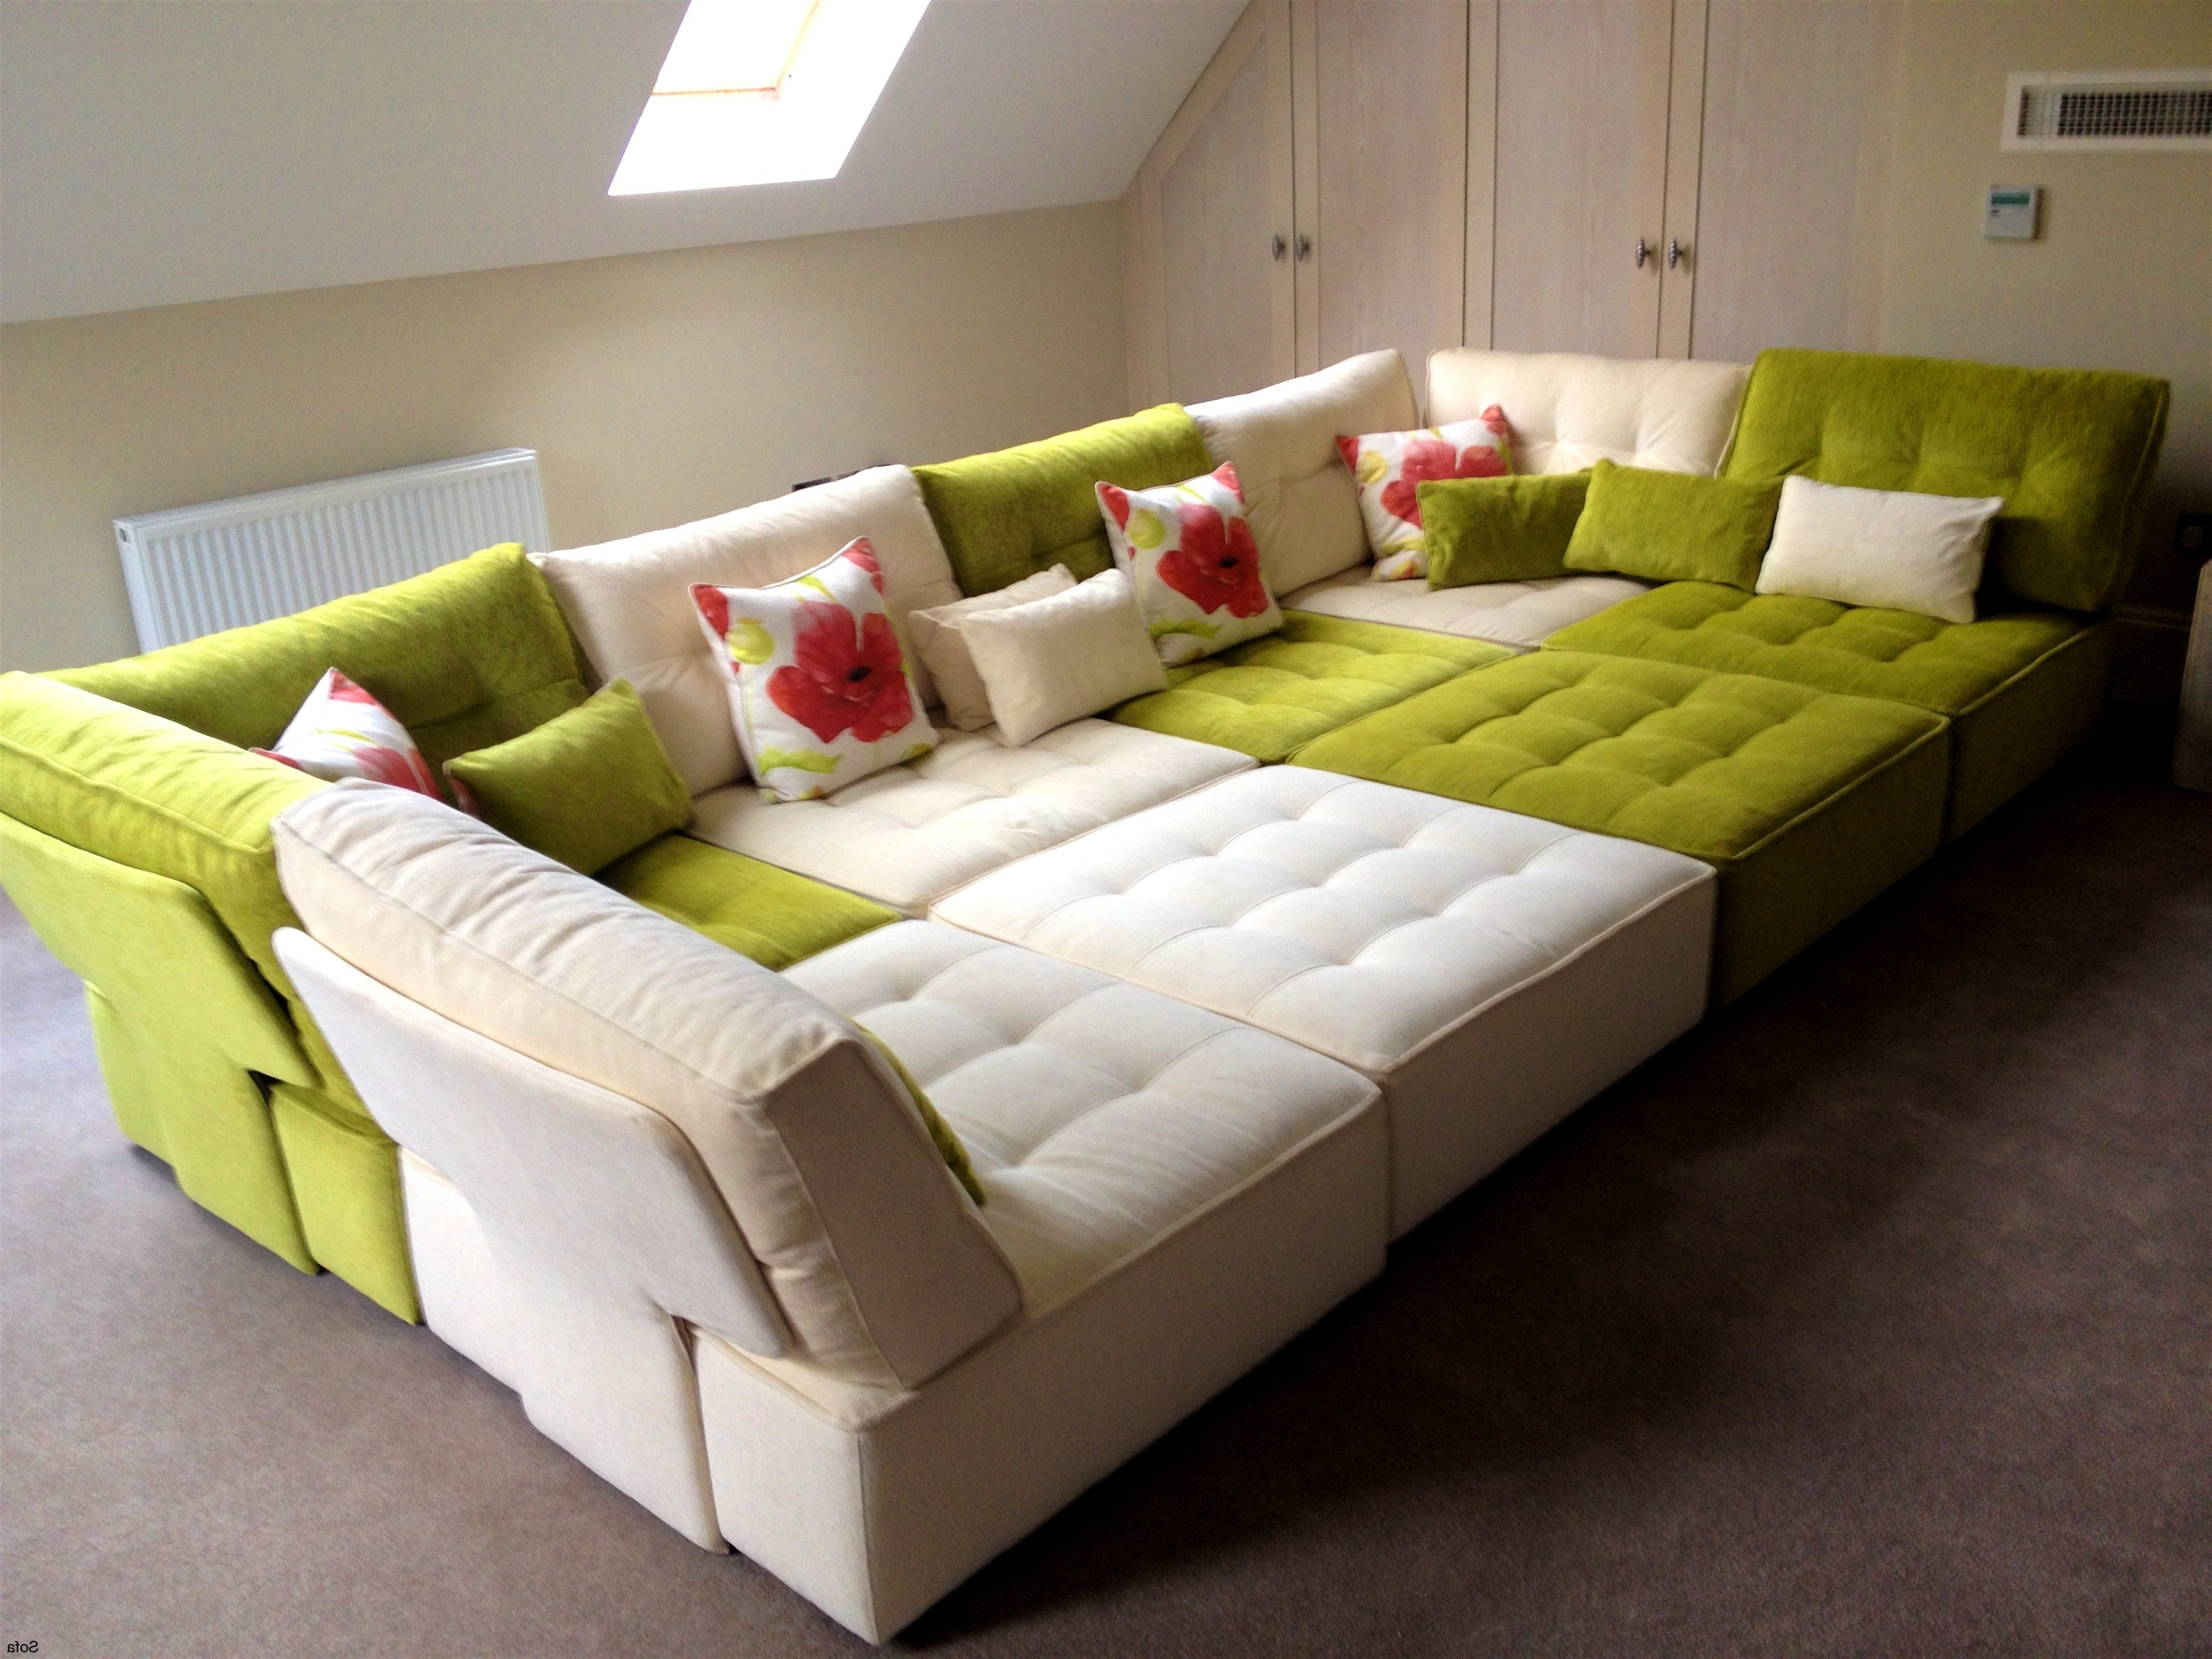 Floor Cushion Sofas For Most Up To Date Floor Cushion Sofa – Mforum (View 2 of 15)